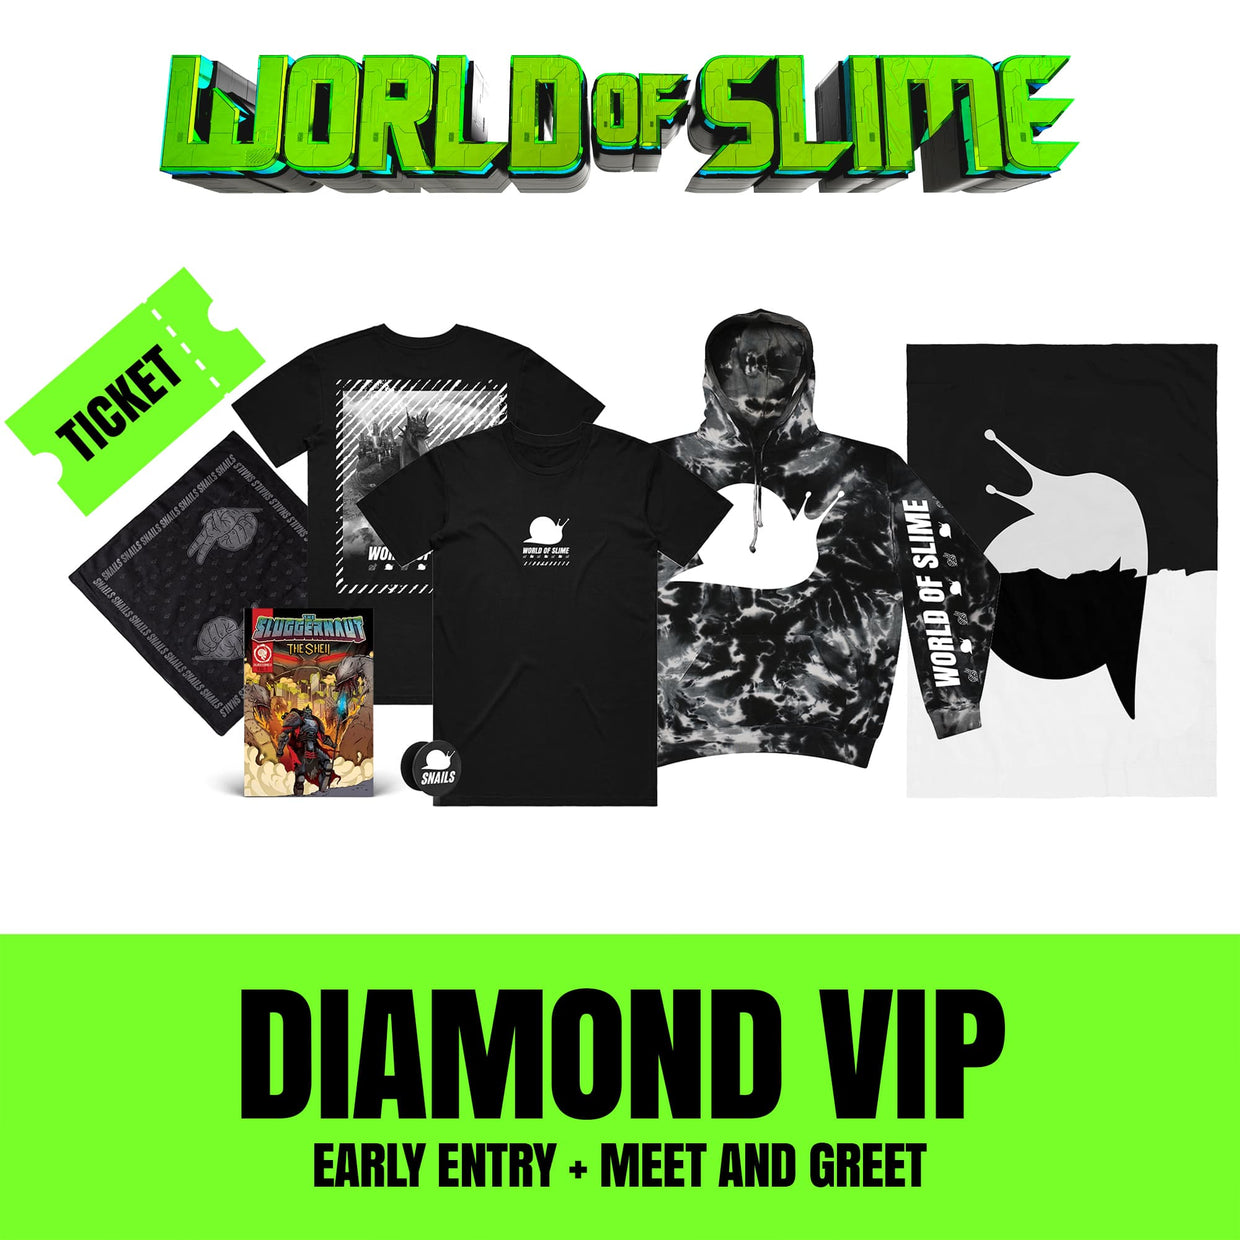 World Of Slime Tour - Toronto, ON - 12/06